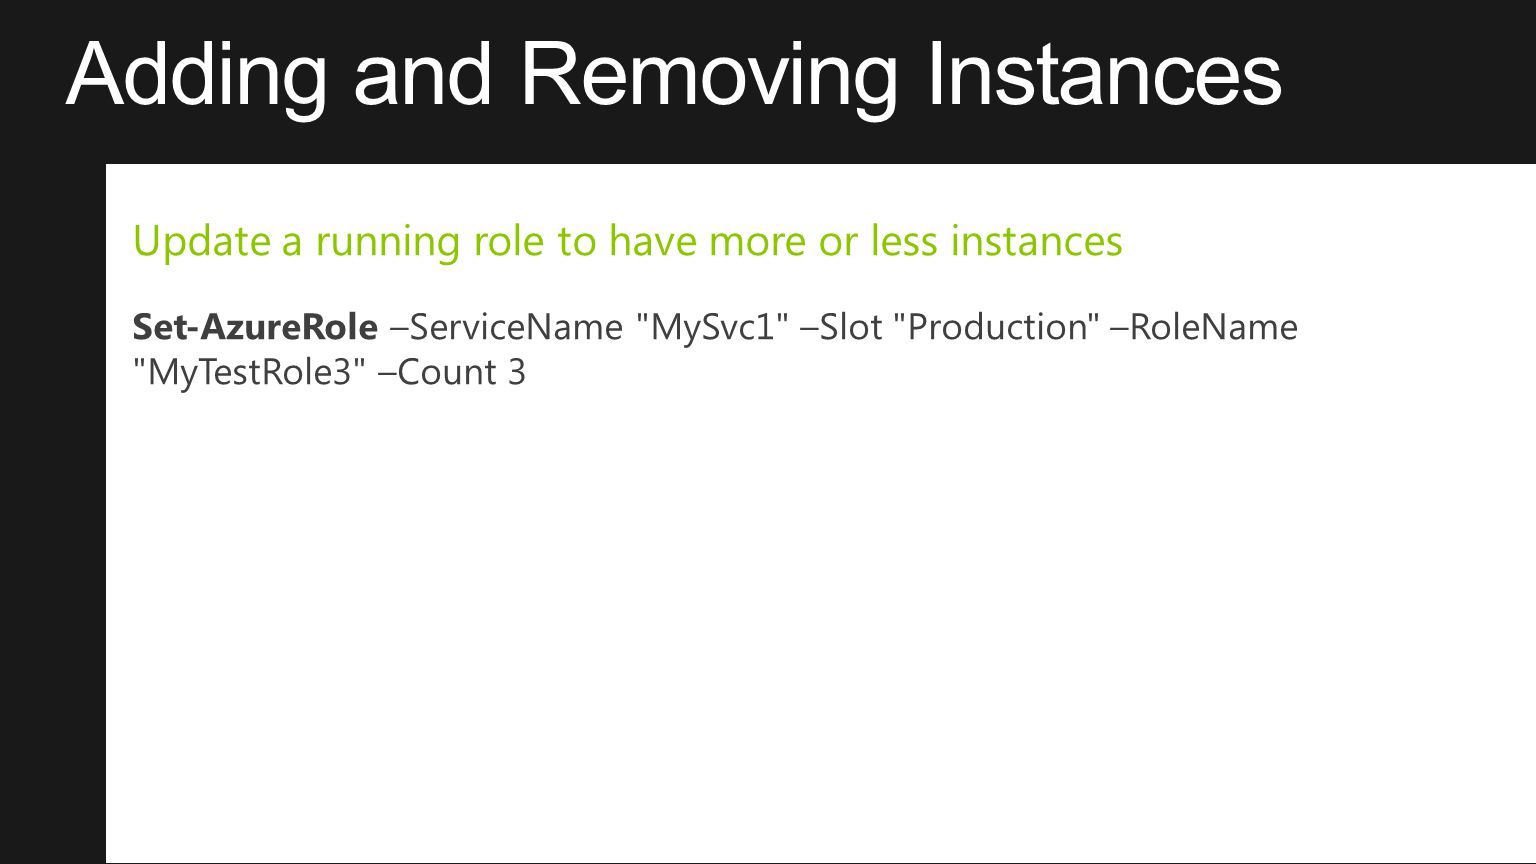 Adding and Removing Instances